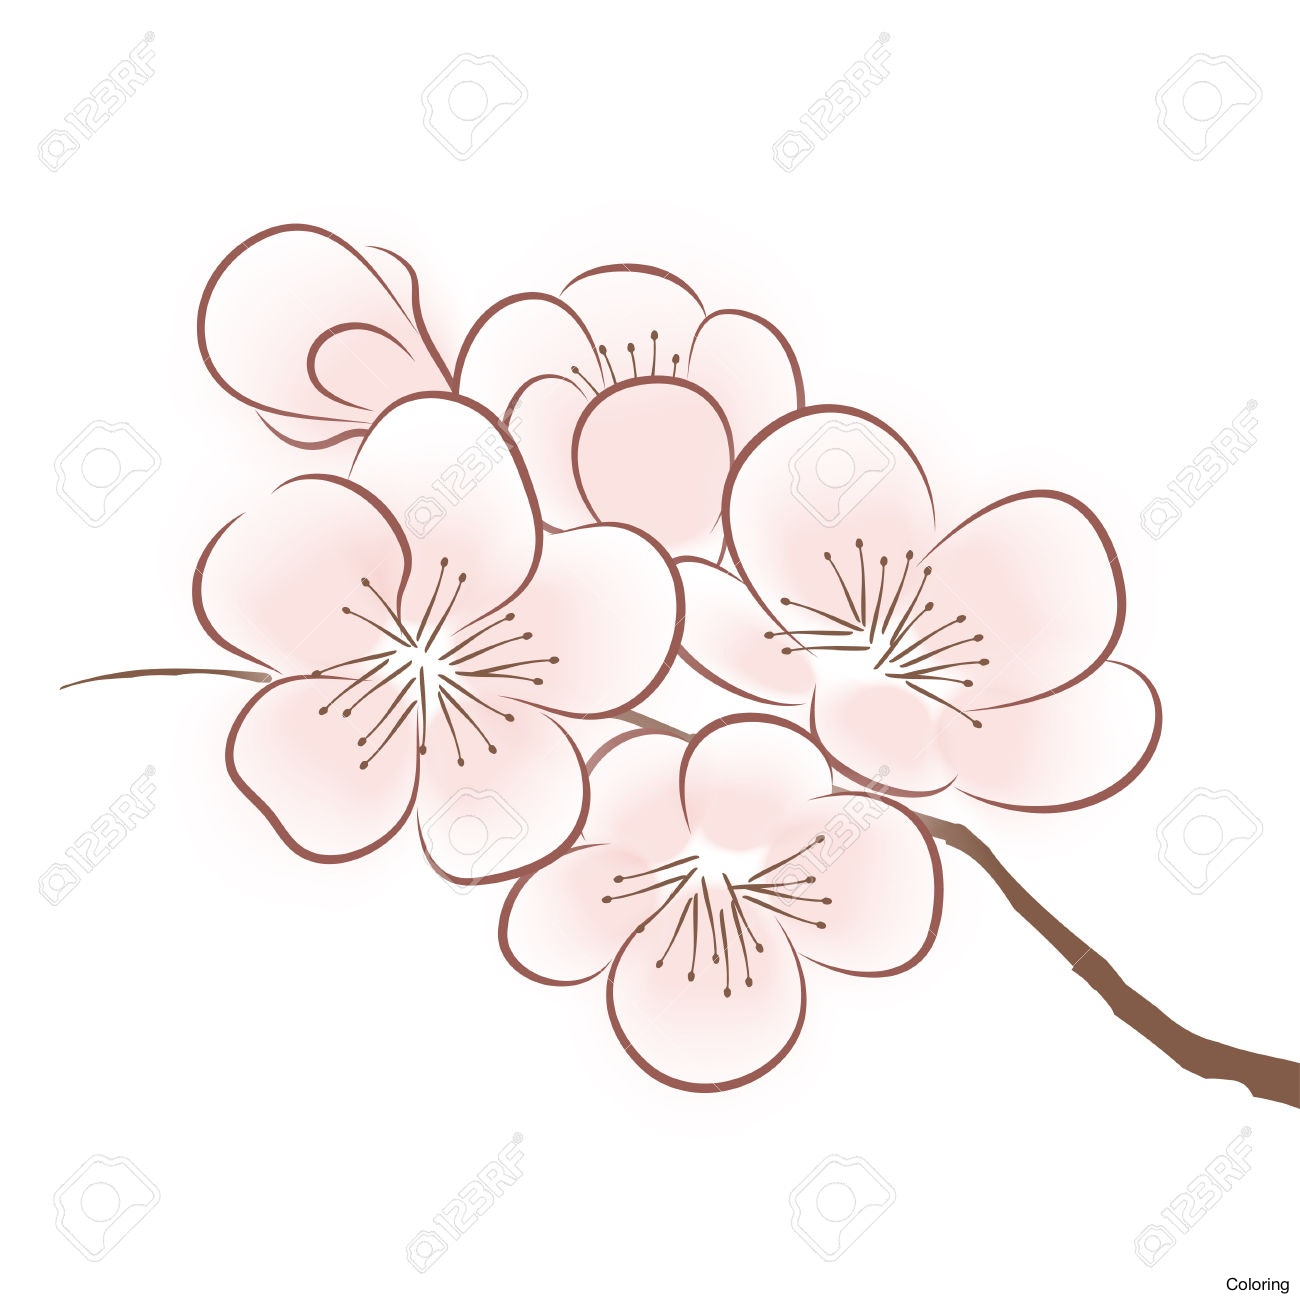 cherry blossom flower drawing at getdrawings com free for personal